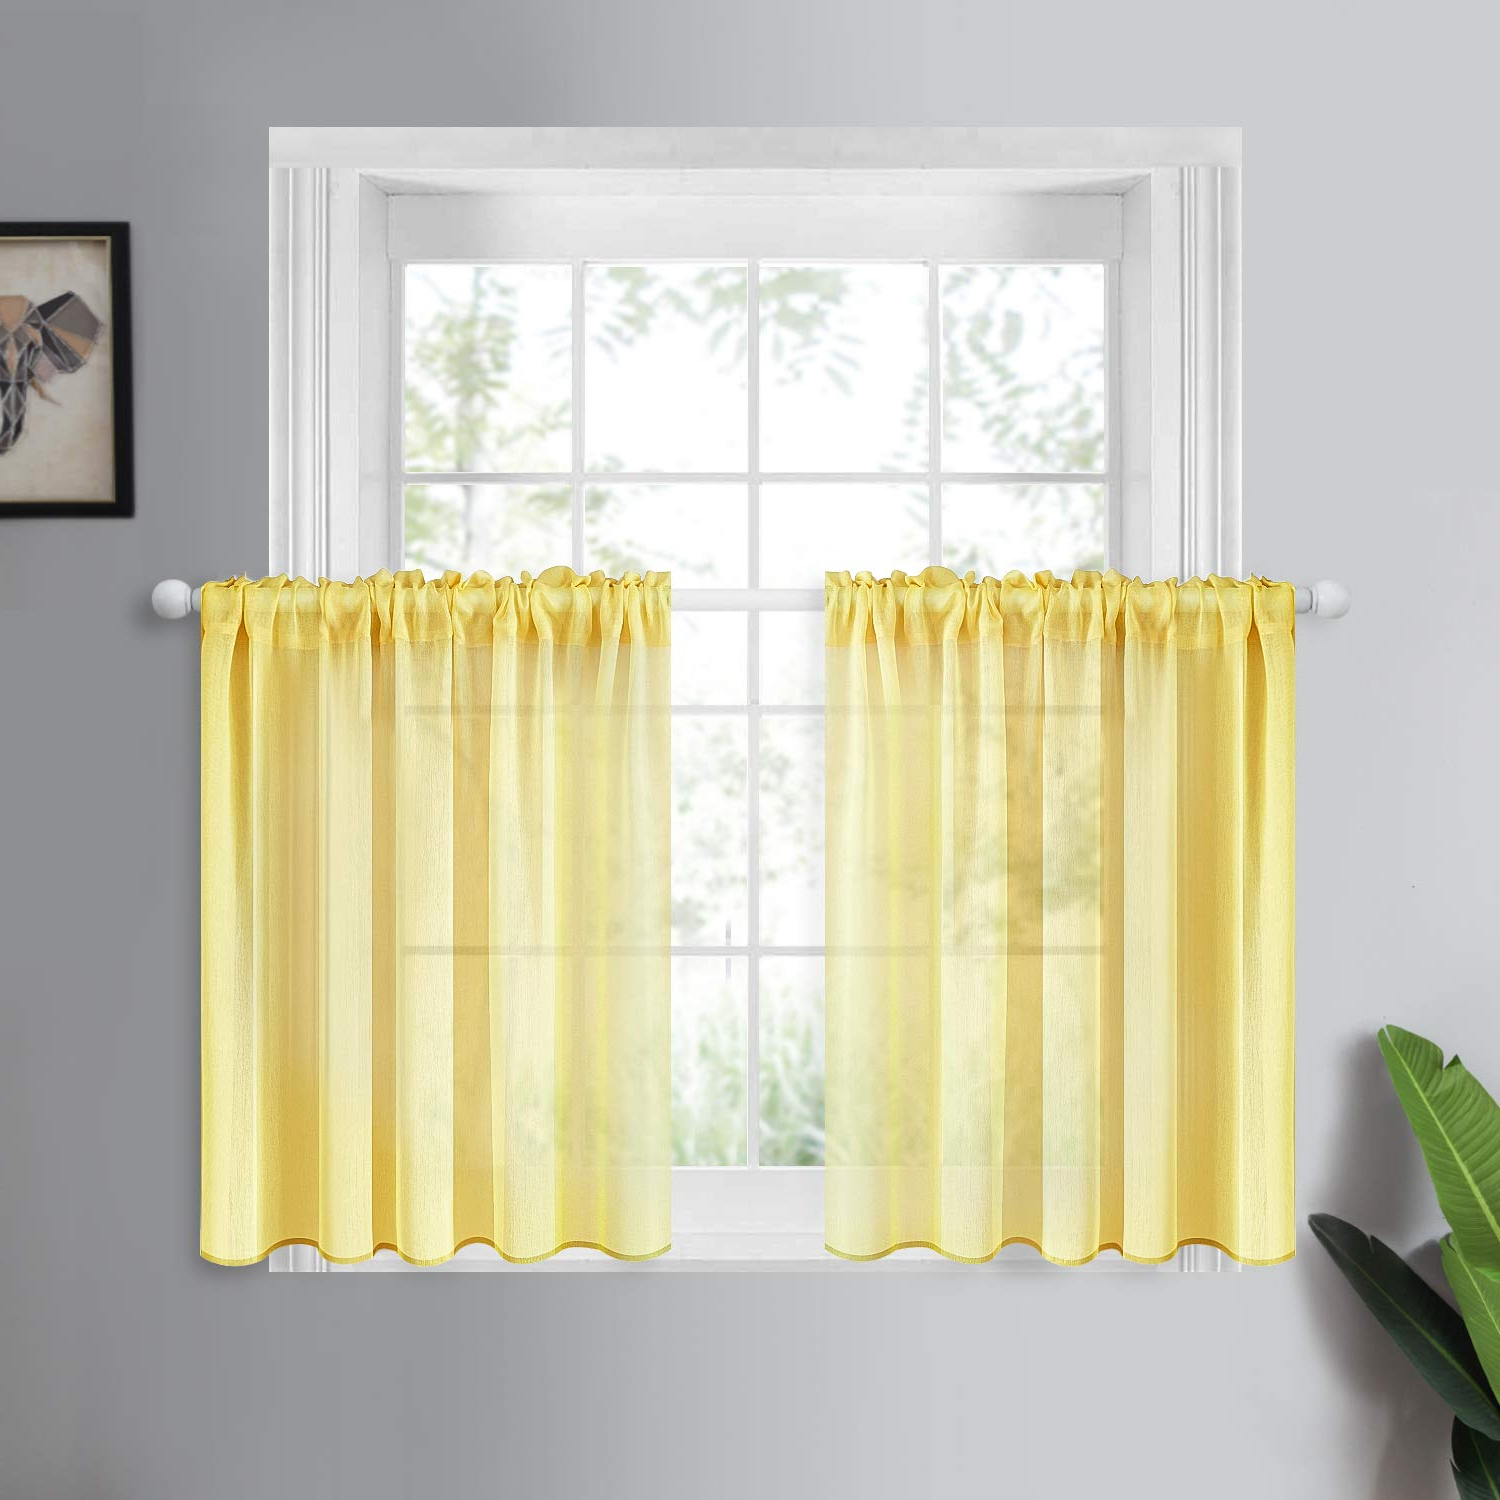 Rod Pocket Kitchen Tiers Within Most Up To Date Yokistg Sheer Kitchen Curtains 36 Inch Length Solid Rod Pocket Tier  Curtains For Cafe Bathroom Basement Small Window, Yellow, 2 Panels (Gallery 15 of 20)